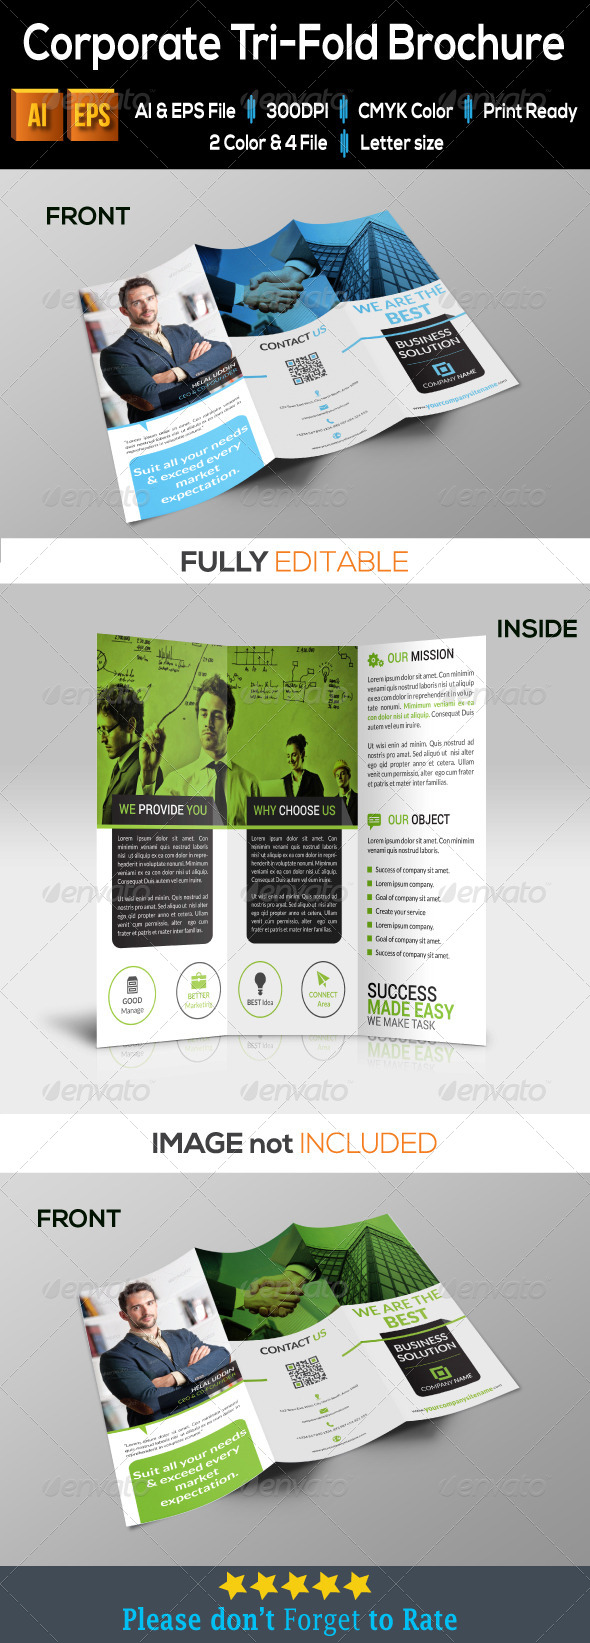 GraphicRiver Corporate Tri-Fold Brochure 7951580